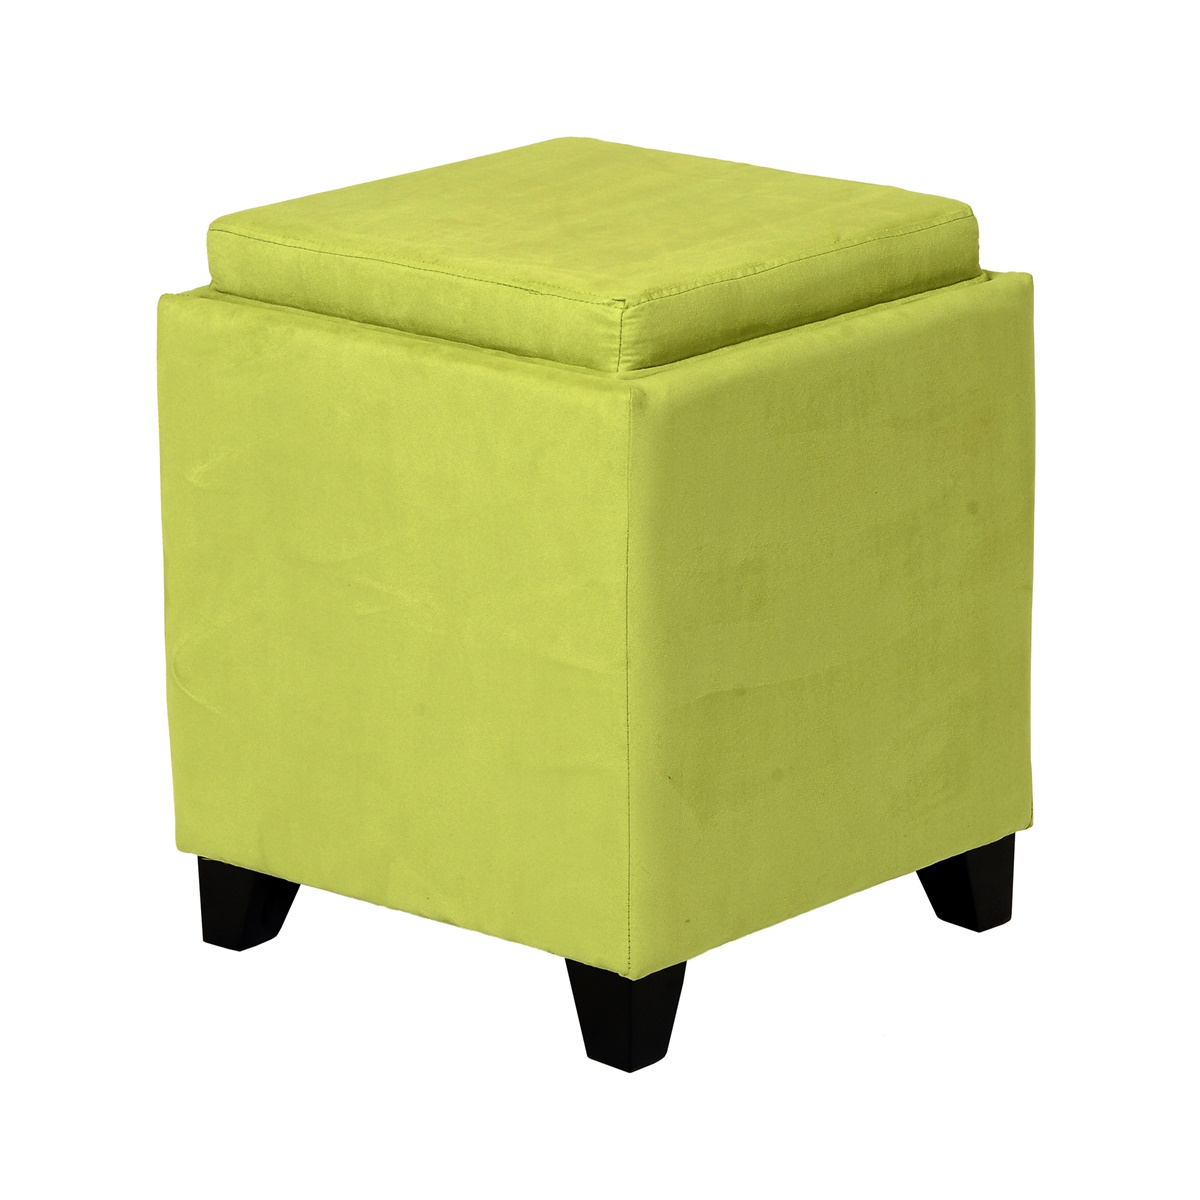 Fabulous Rainbow Microfiber Storage Ottoman With Tray Alphanode Cool Chair Designs And Ideas Alphanodeonline